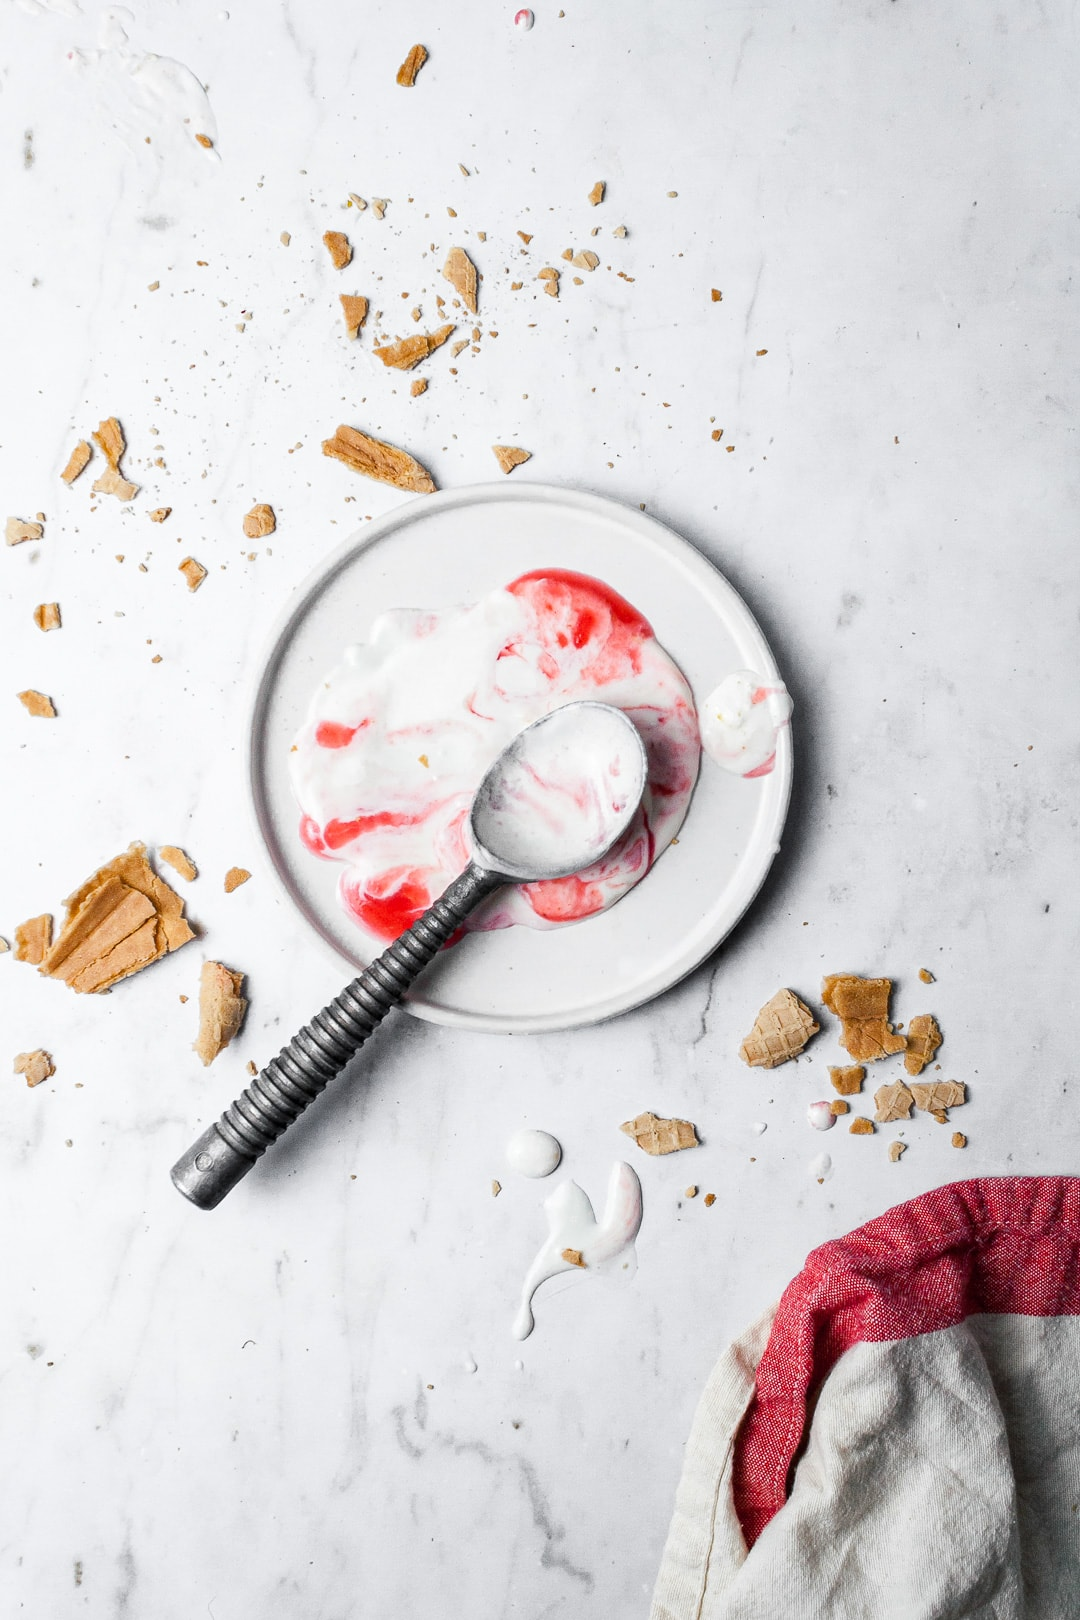 Melted puddle of red and white ice cream on a white plate with crushed sugar cone strewn nearby